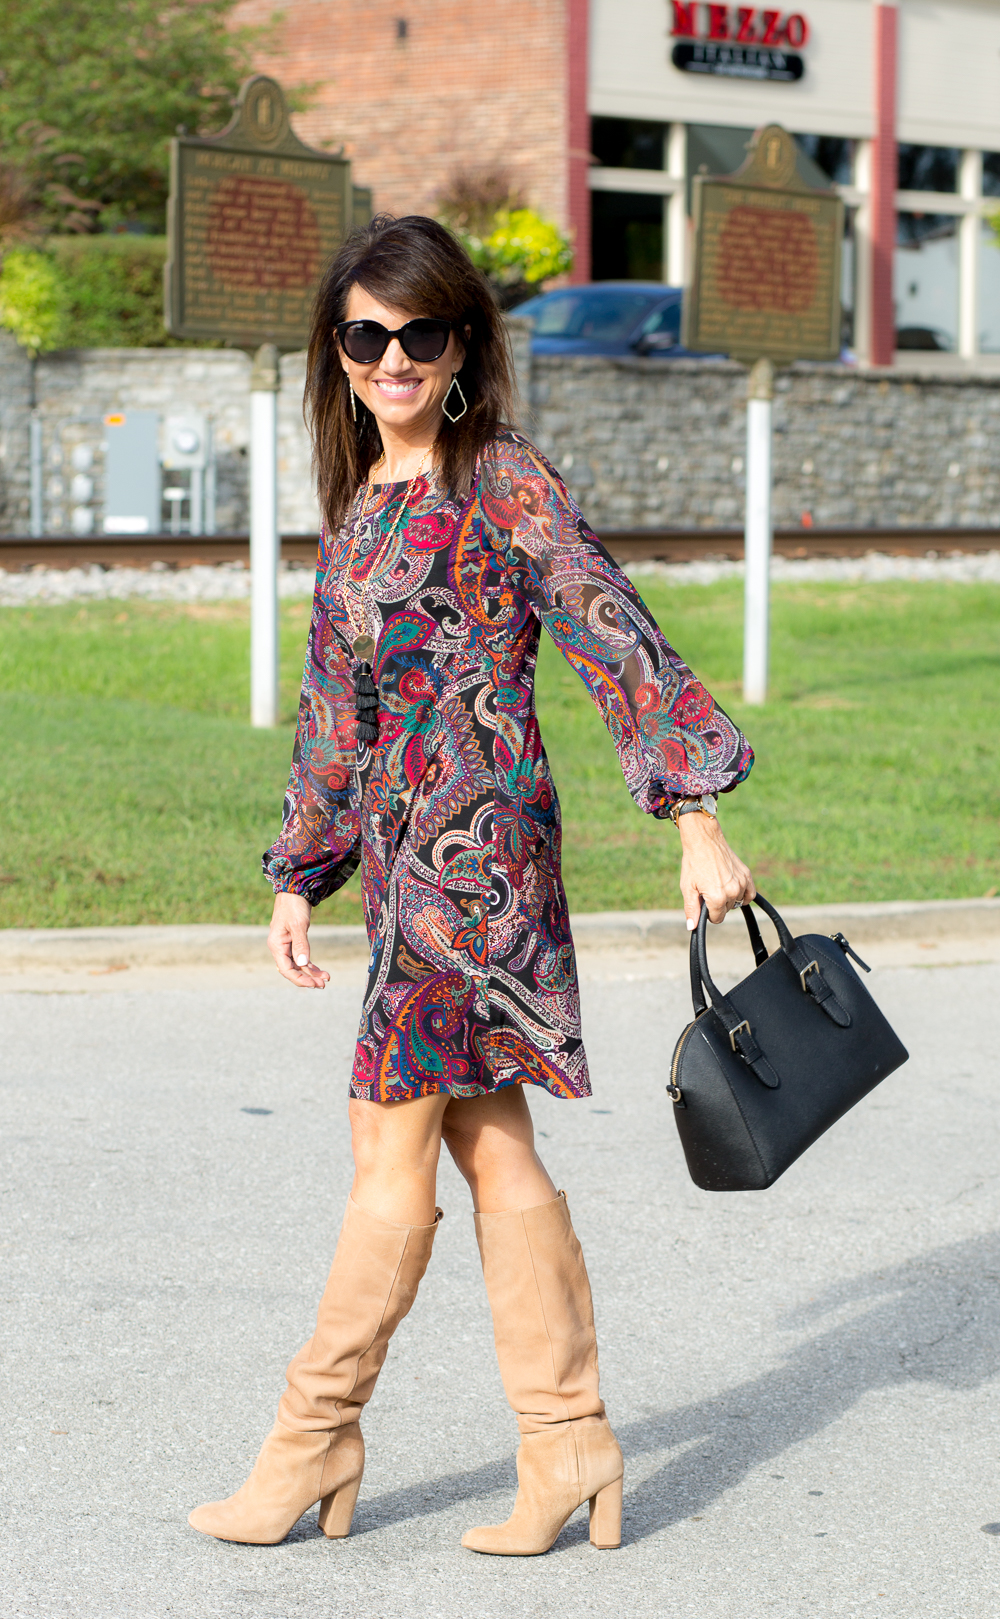 Paisley Shift Dress Under $50